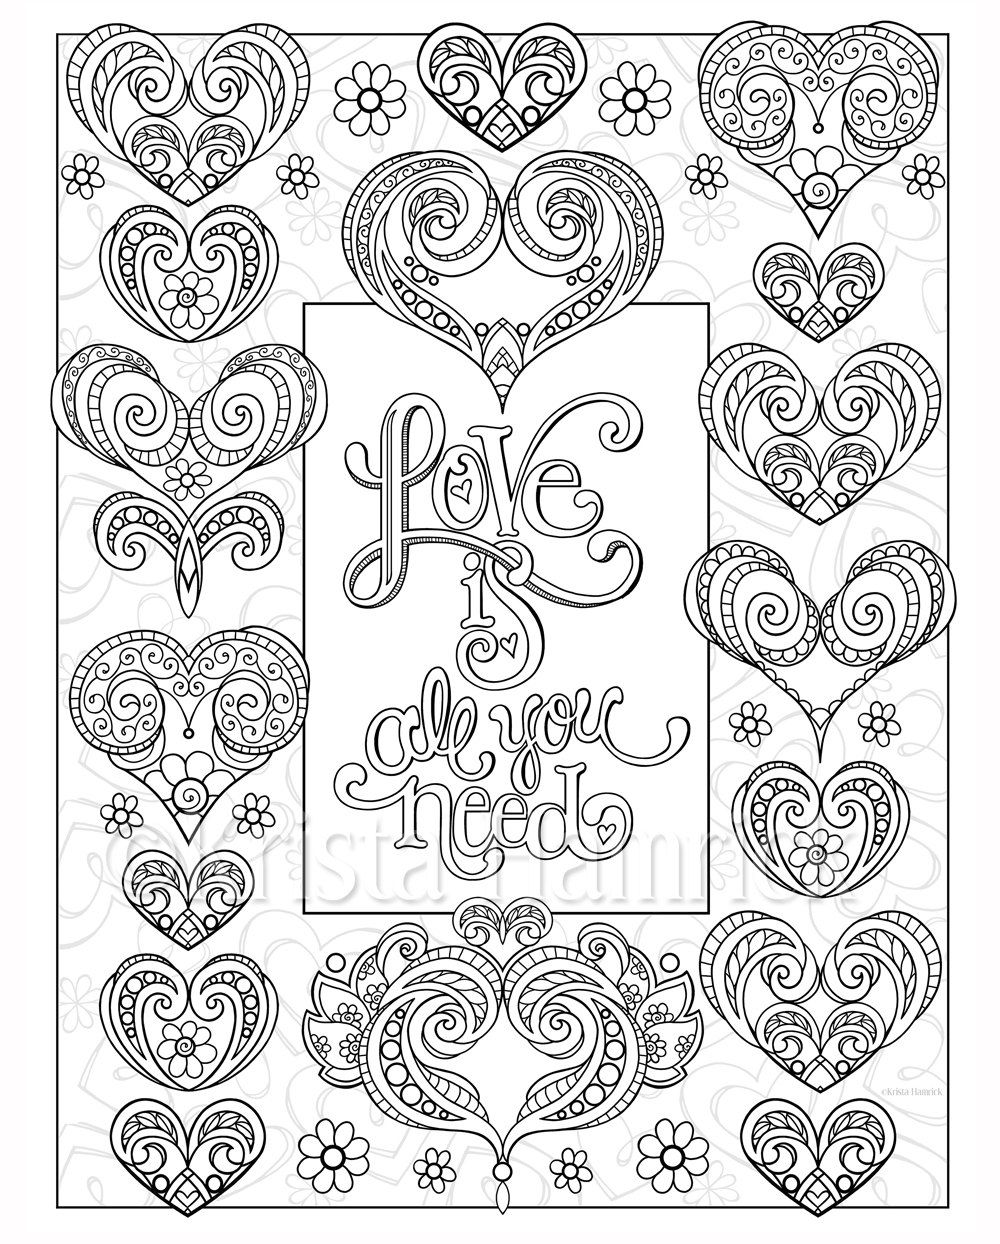 Love Hearts 2 Coloring Pages For Valentine S Day Color Pages